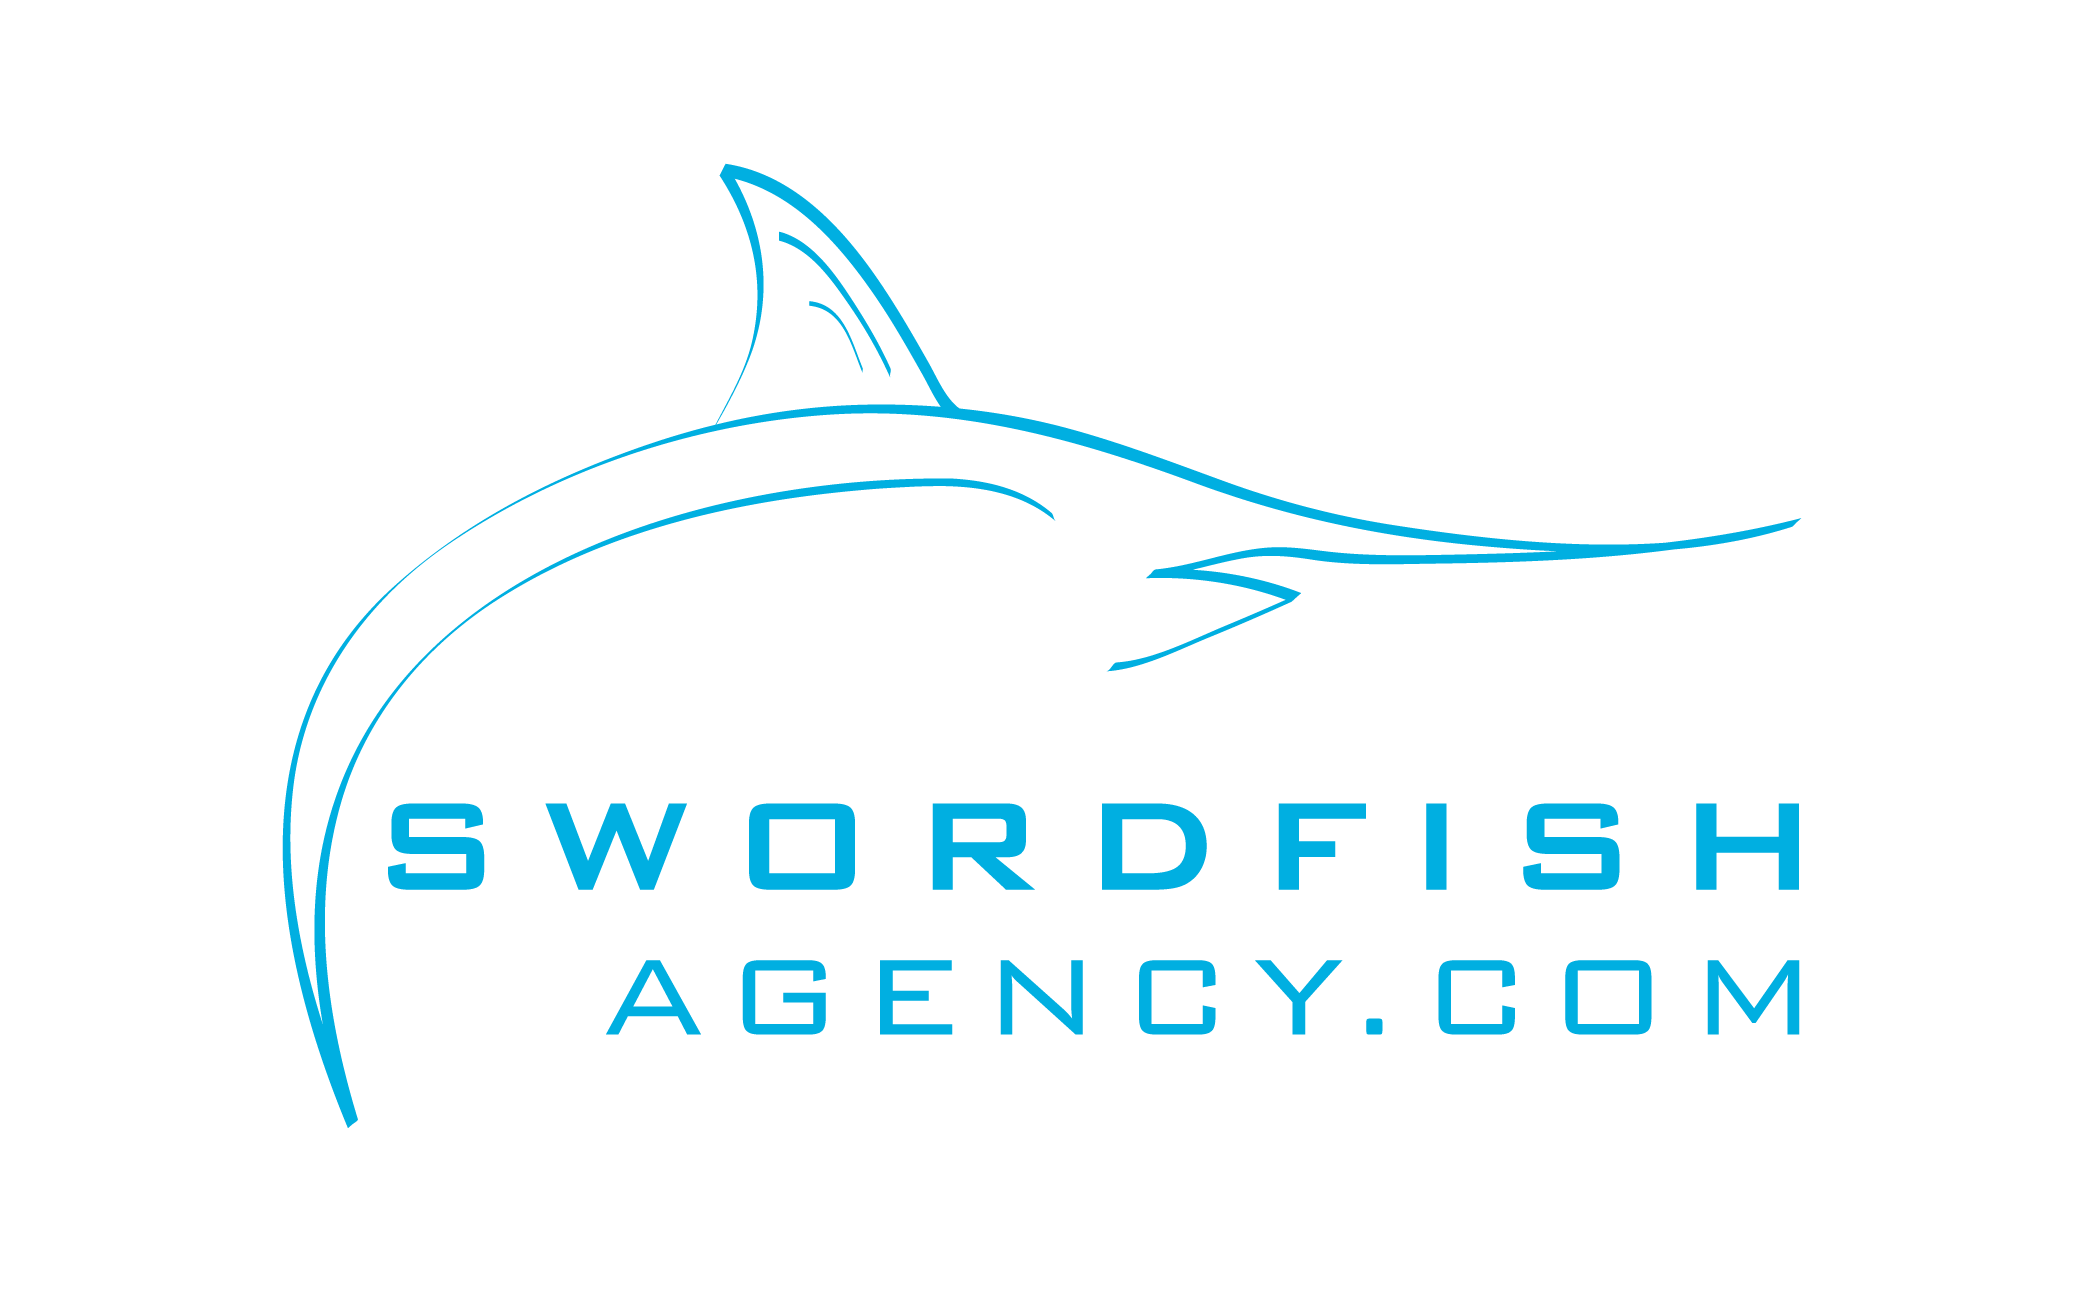 Swordfish Agency Inc